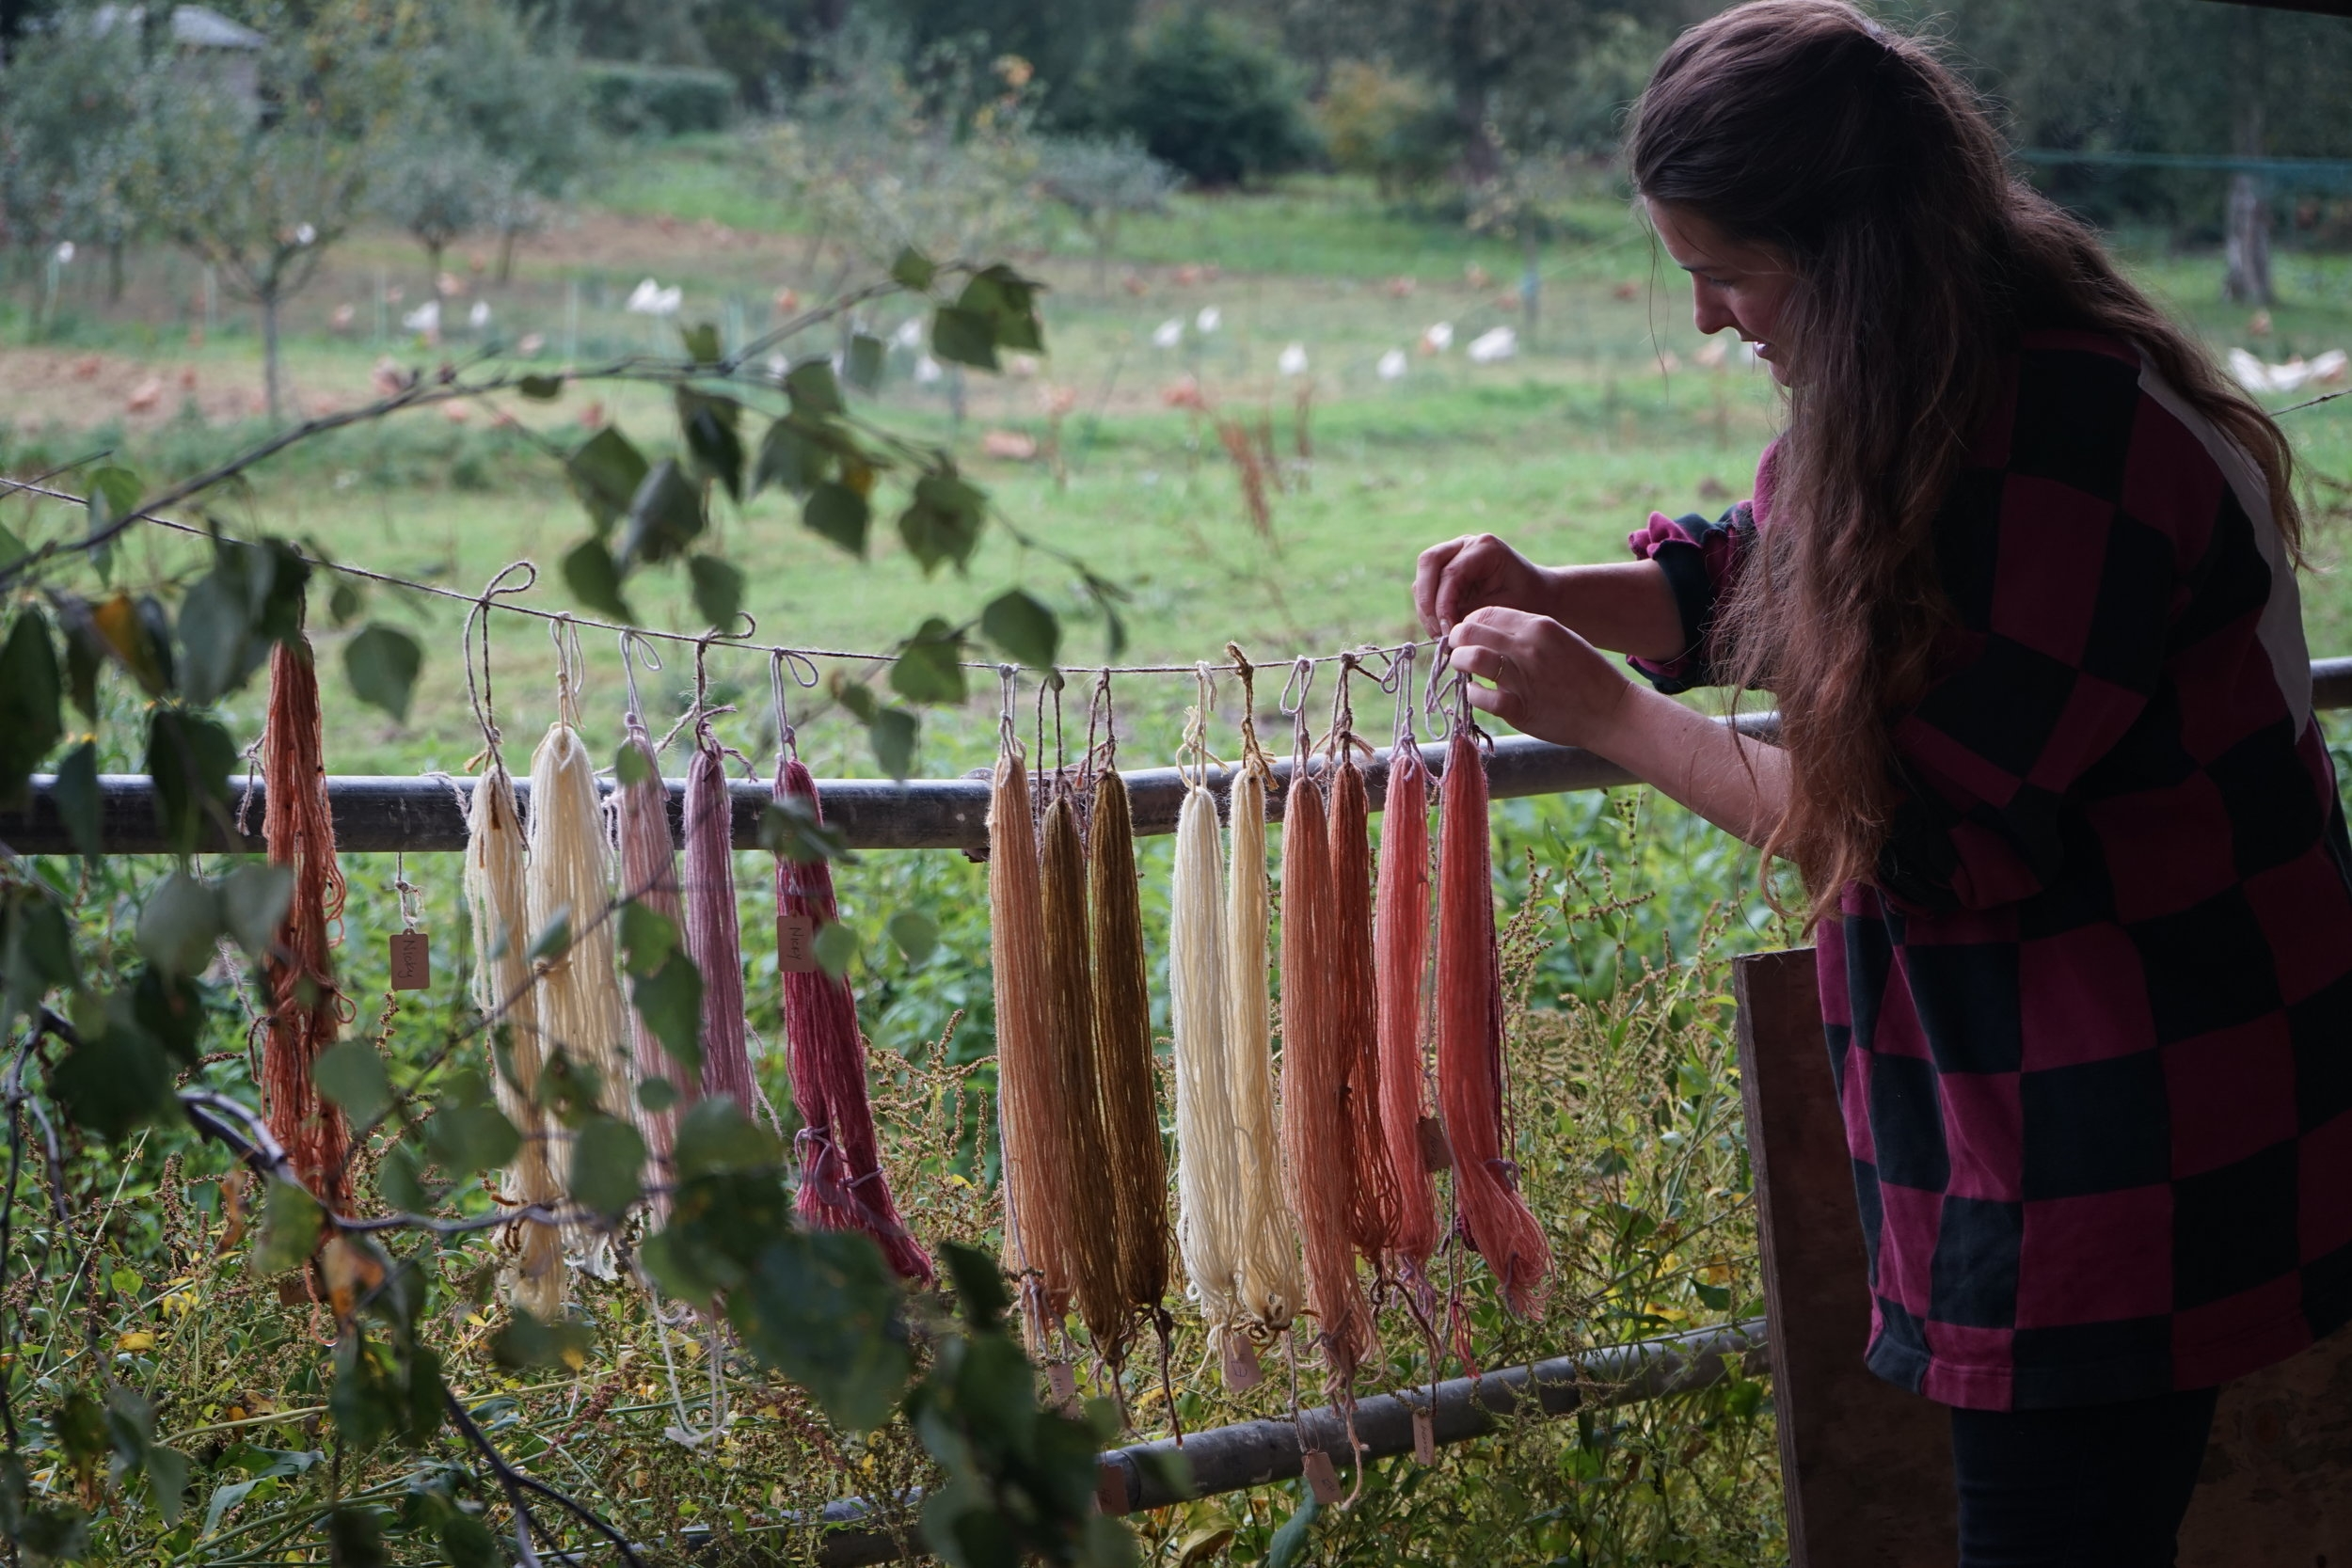 Copy of Hanging dyed skeins out to dry